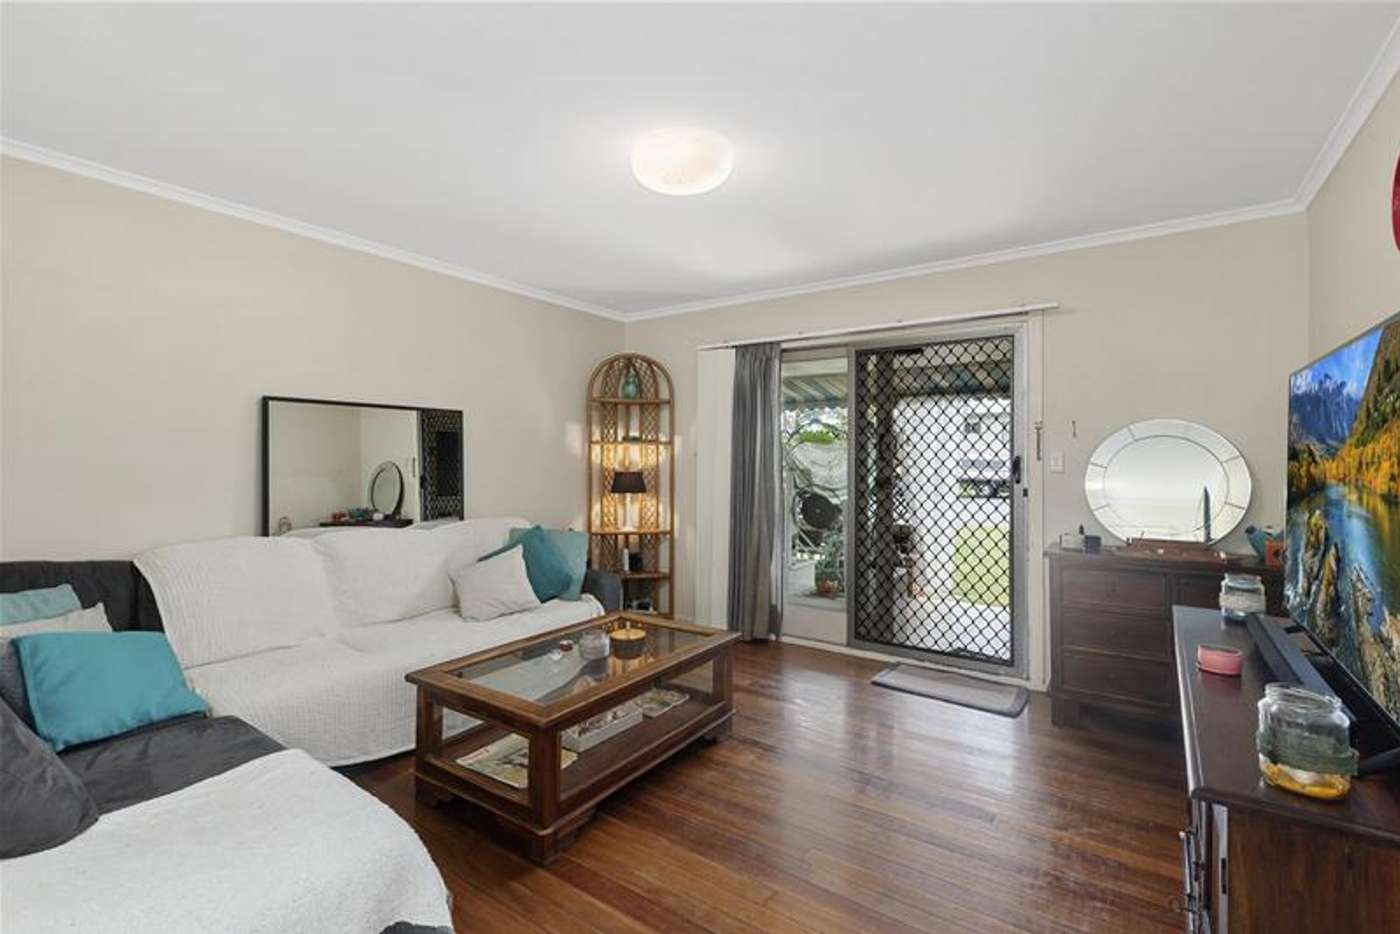 Sixth view of Homely house listing, 2 Cypress Terrace, Palm Beach QLD 4221